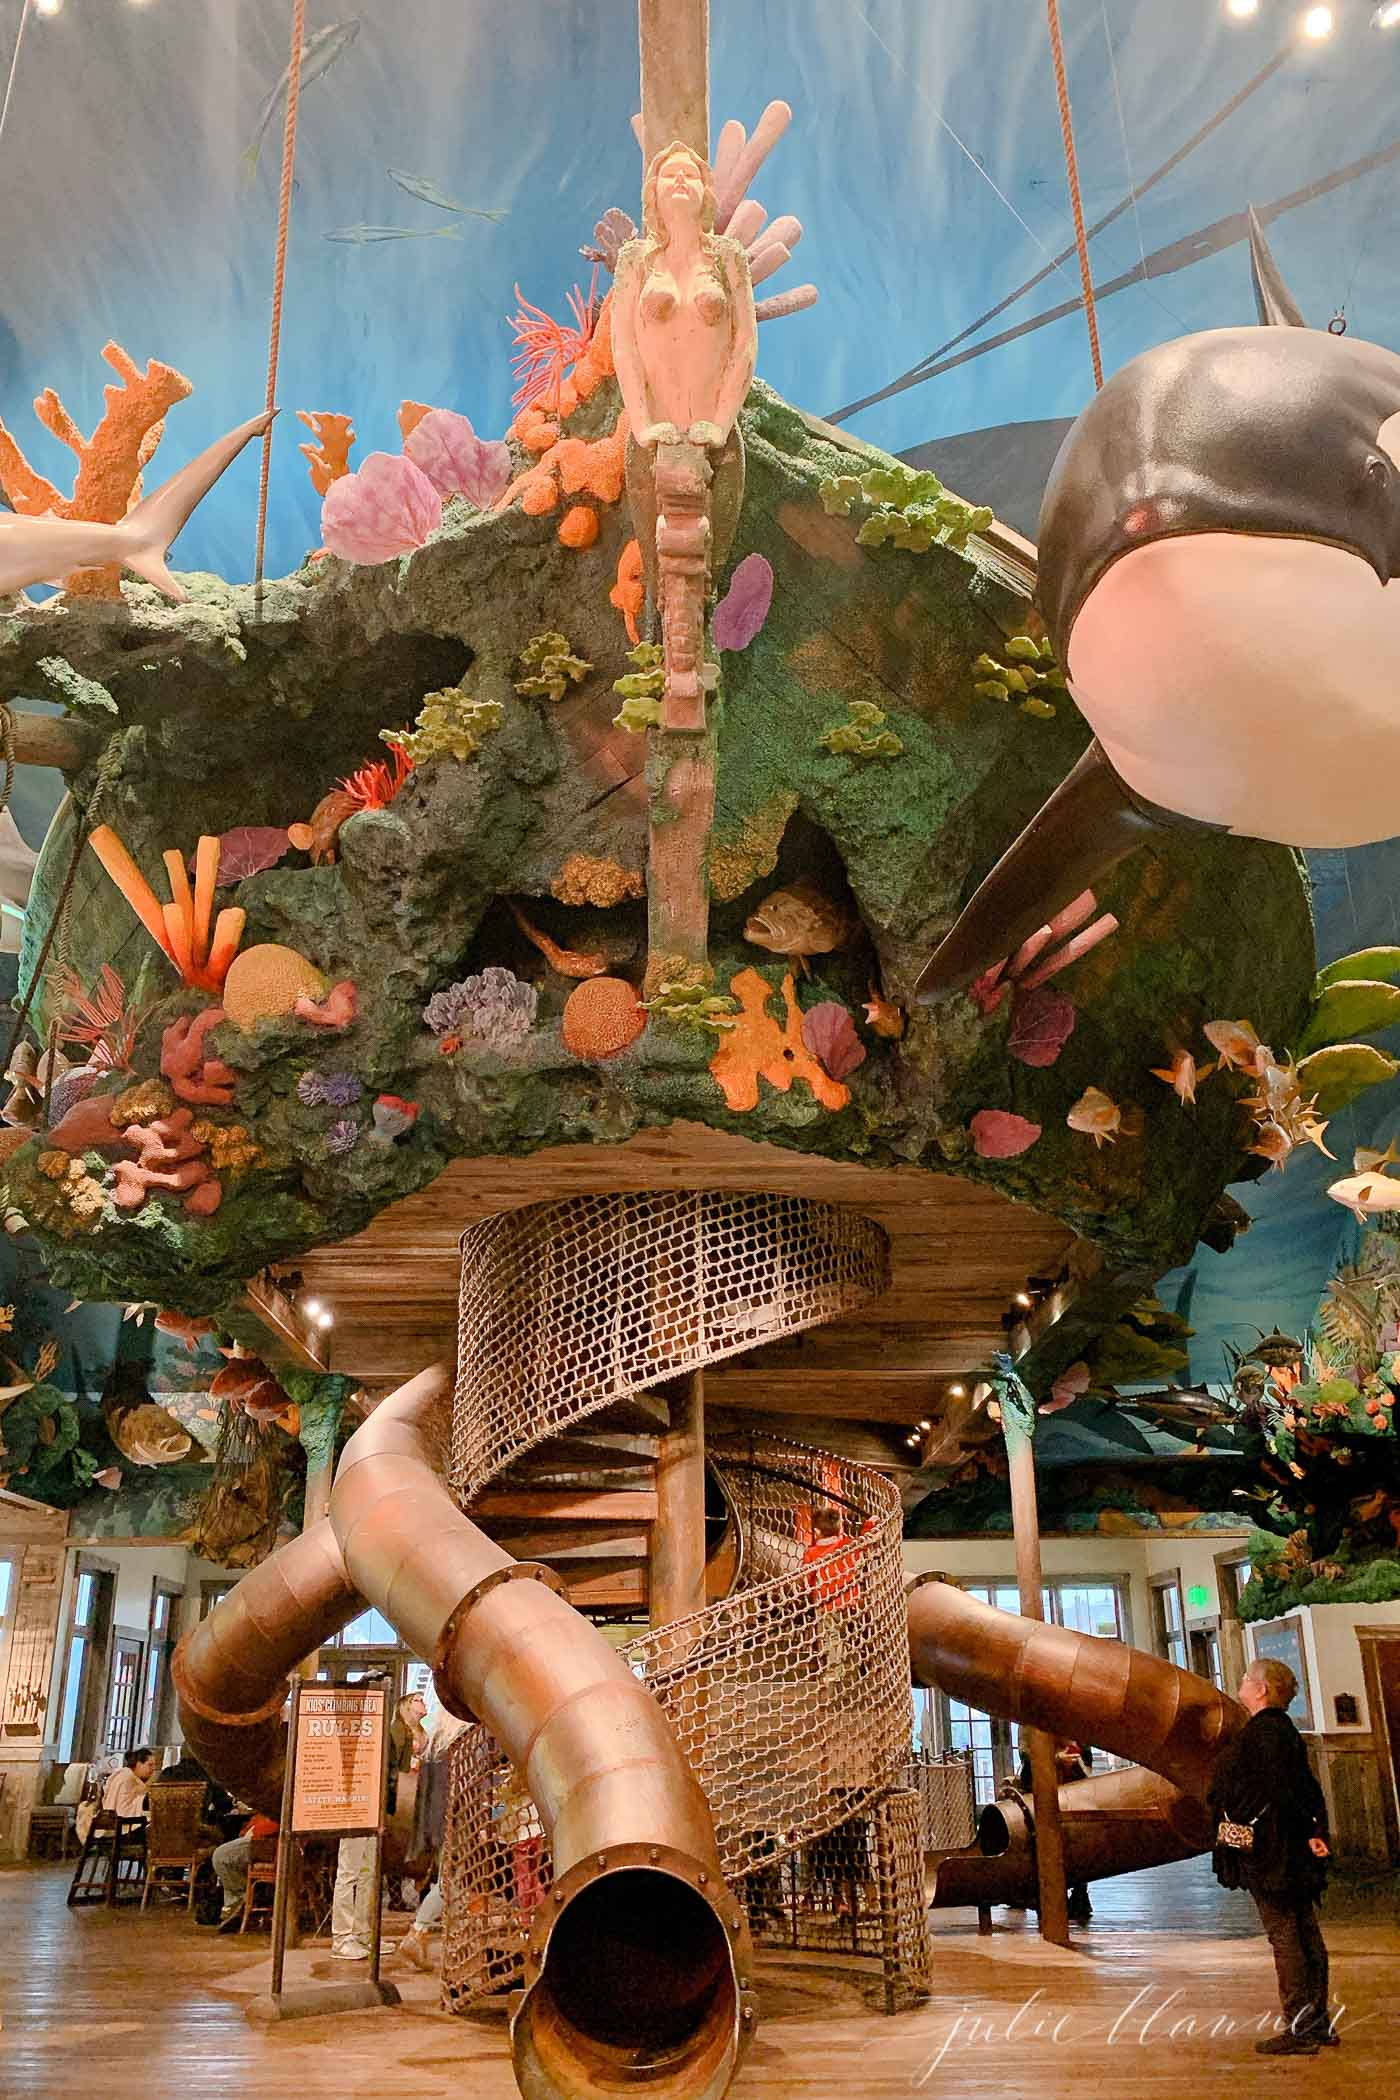 An adventure park ship in a post of things to do in branson, Missouri.